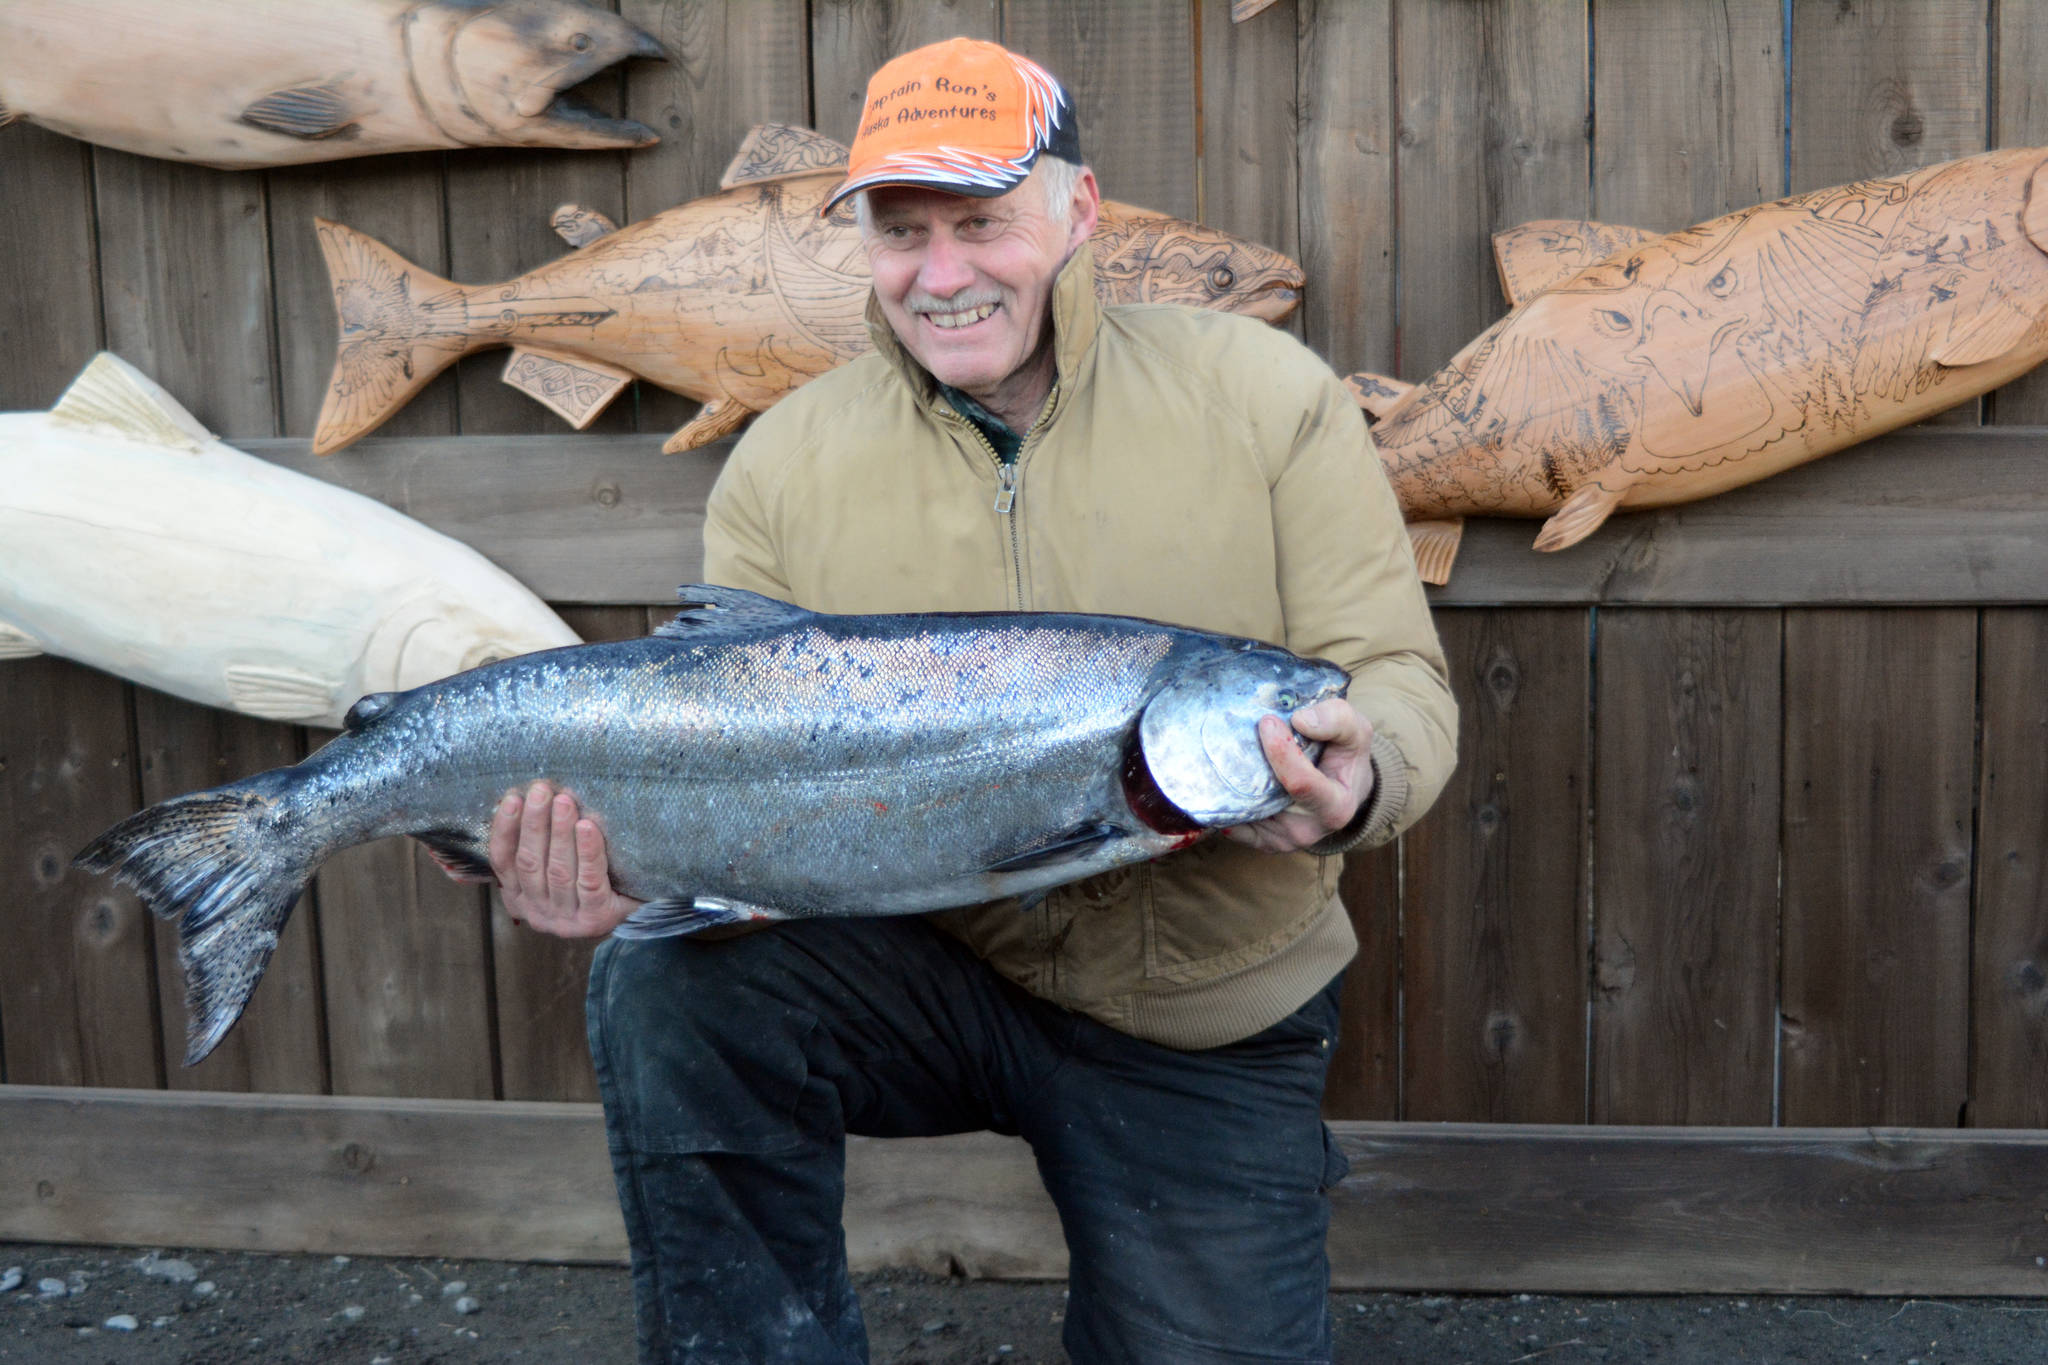 Ron Johnson holds his winning king salmon of 25.65 pounds, at the 24th annual Homer Winter King Tournament on Saturday, March 23, 2017. One-thousand and 12 anglers registered in the tournament in 314 boats, catching 110 king salmon weighing 1,584 pounds total. Anglers also caught 27 white kings weighing 438 pounds total. (Photo by Michael Armstrong, Homer News).